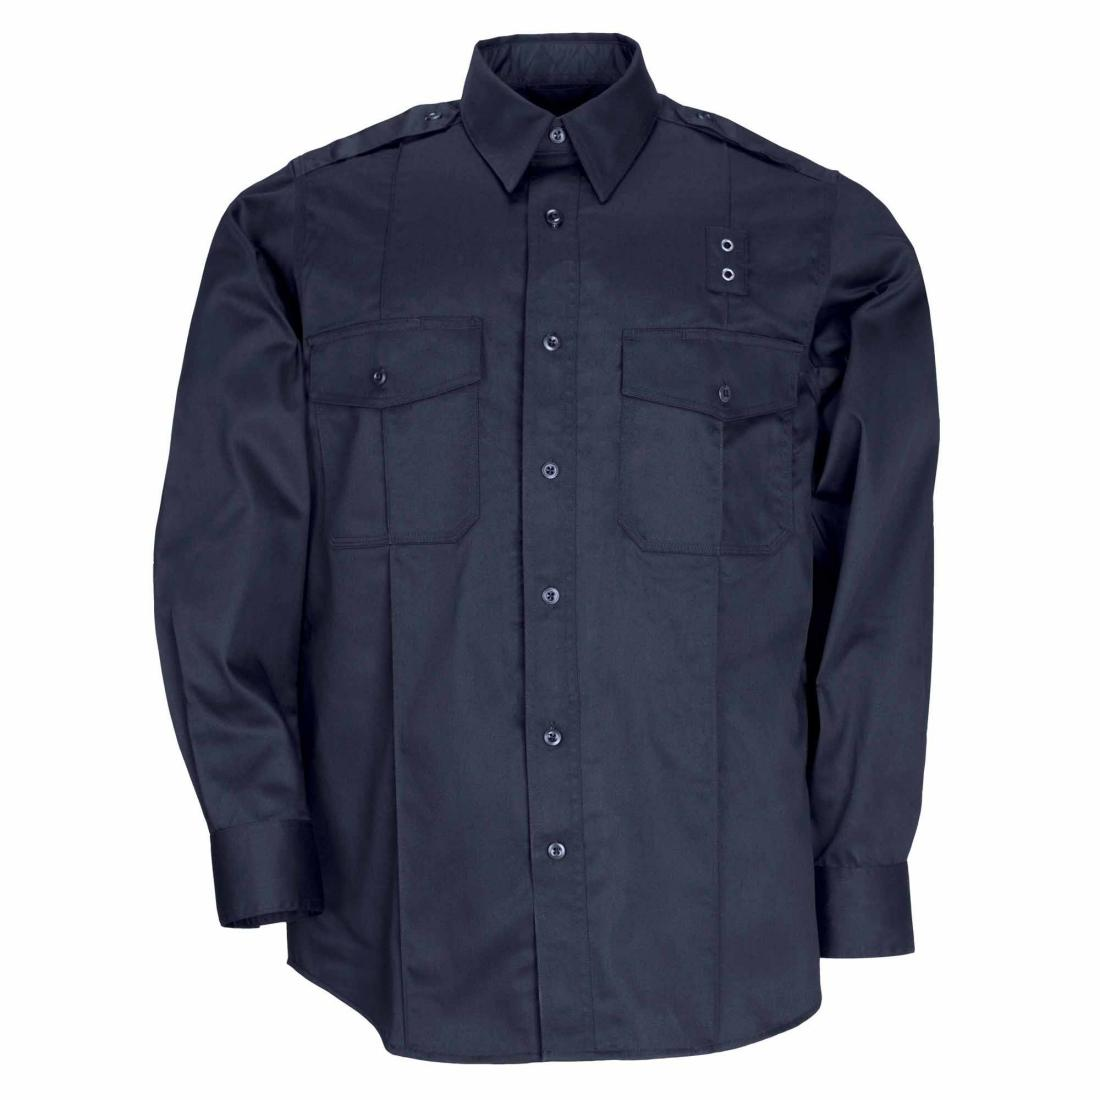 5.11 Tactical 72365 Men Taclite PDU Class-A Long Sleeve Shirt Midnight Navy Short - Small